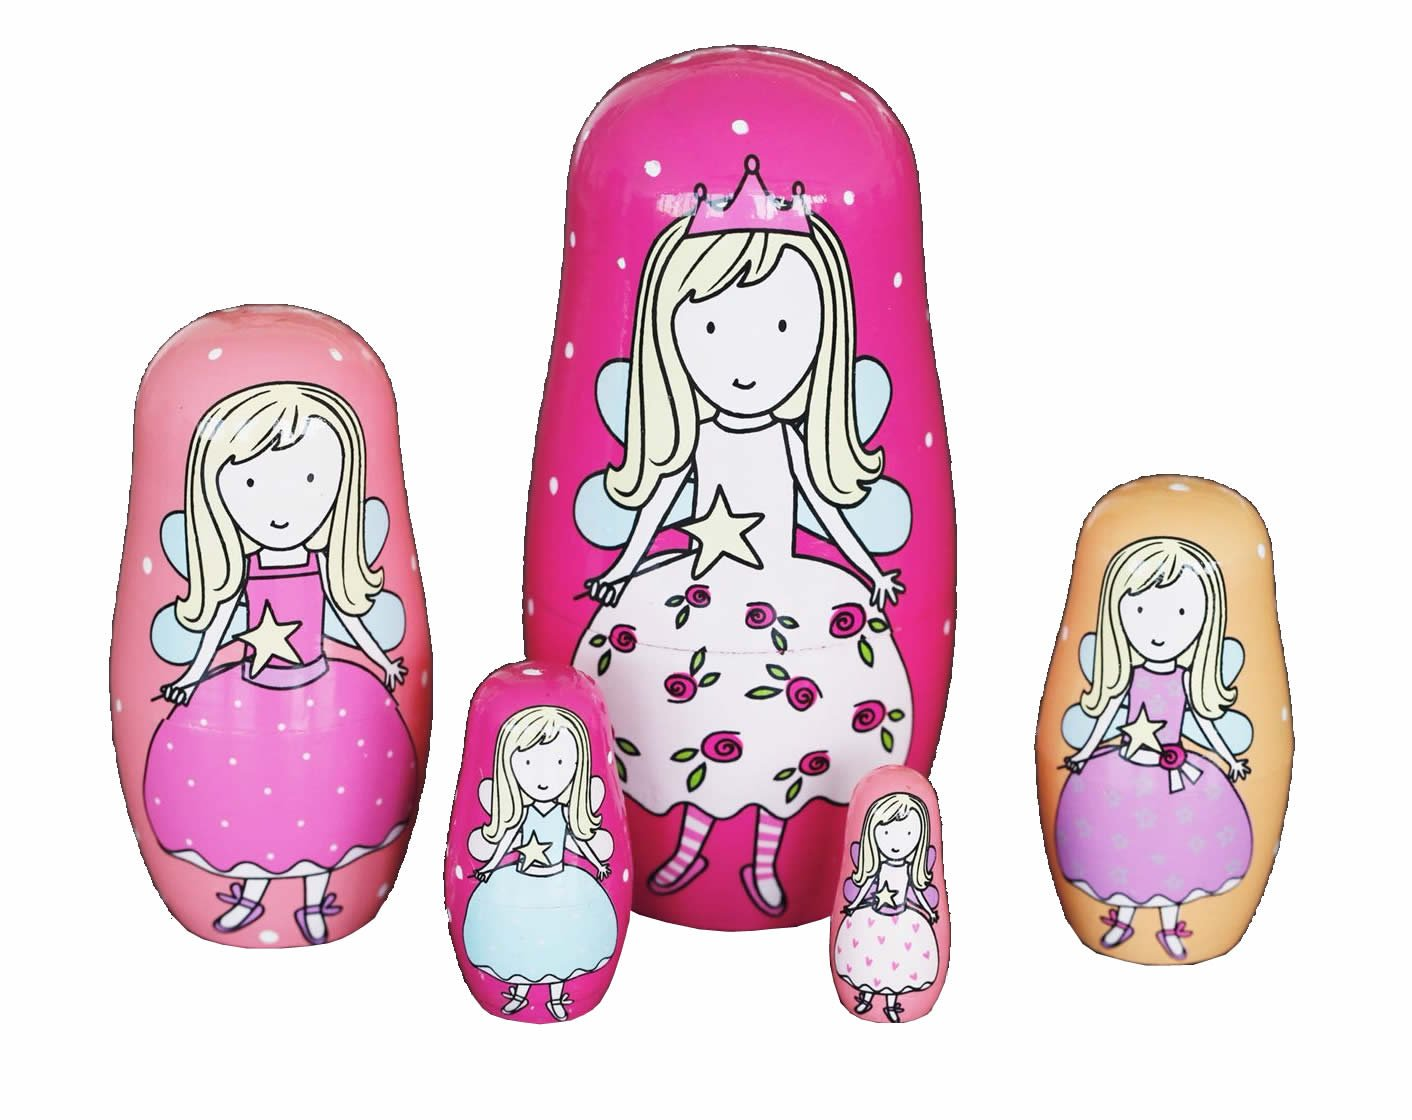 5pcs Cute and Funny Wooden Fairy Stacking toys/Russian nesting dolls/Matryoshka gifts for kids